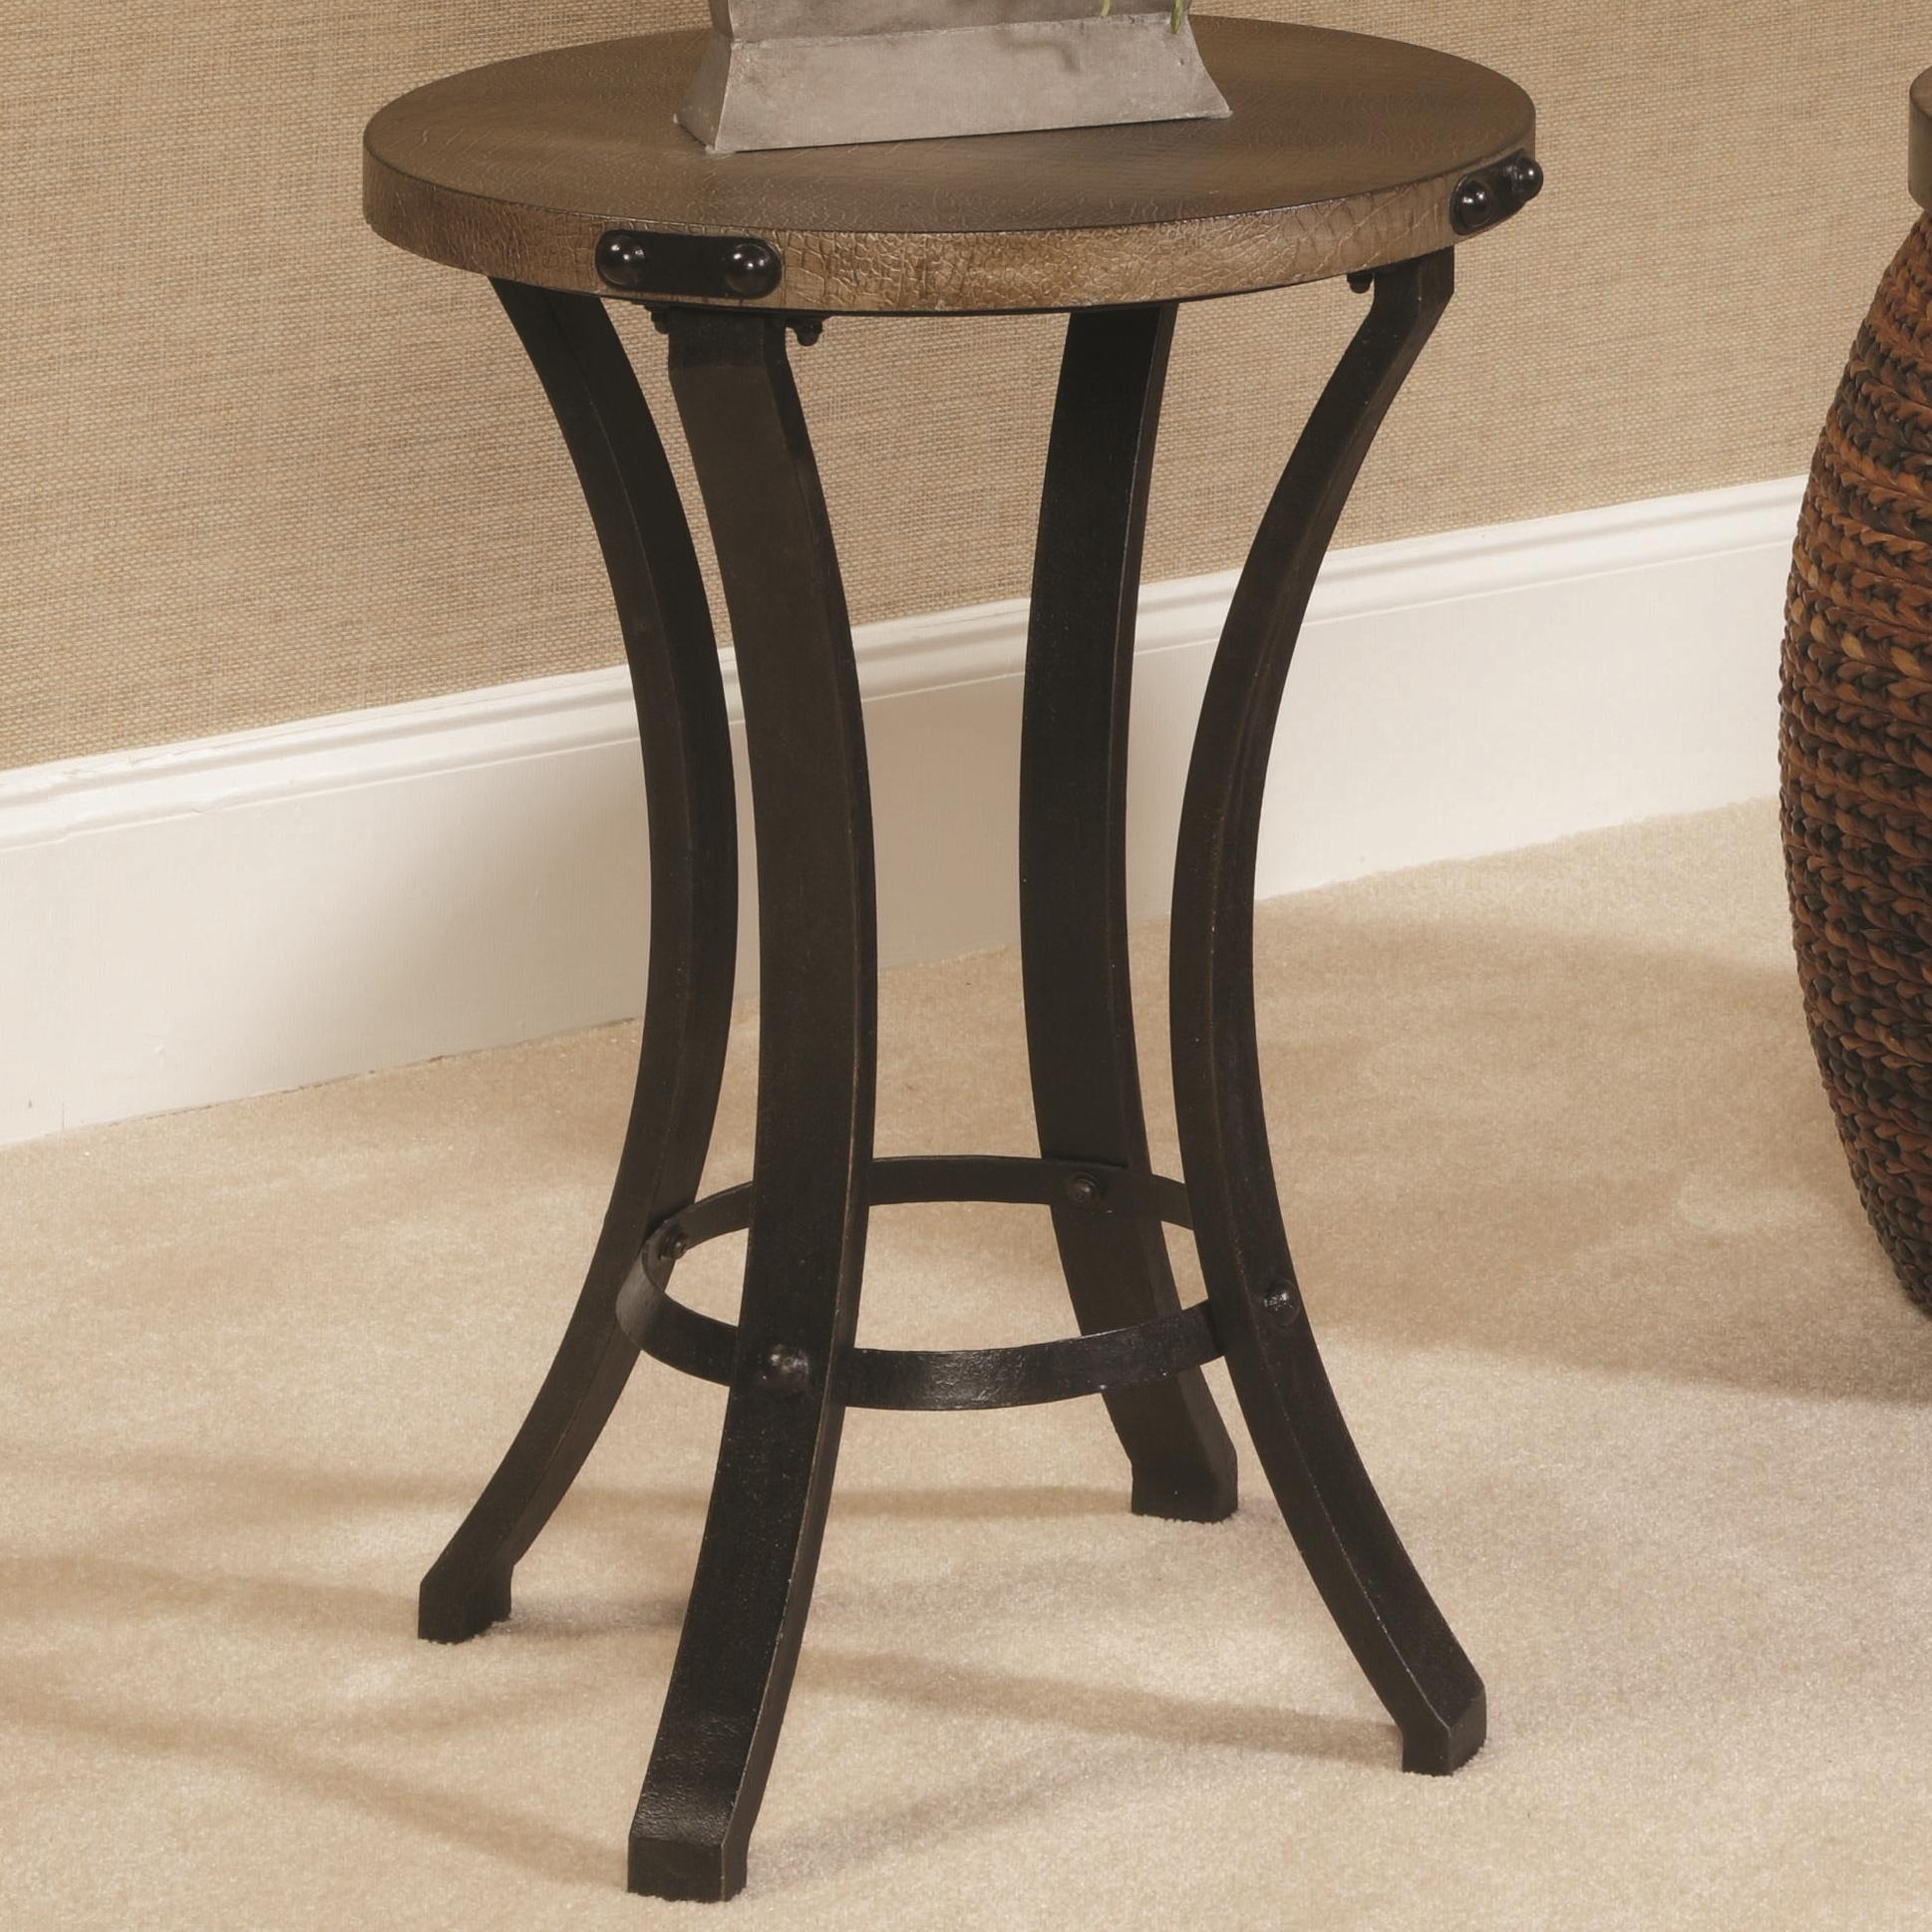 Hammary hidden treasures 090 370 metal base round accent Metal table base